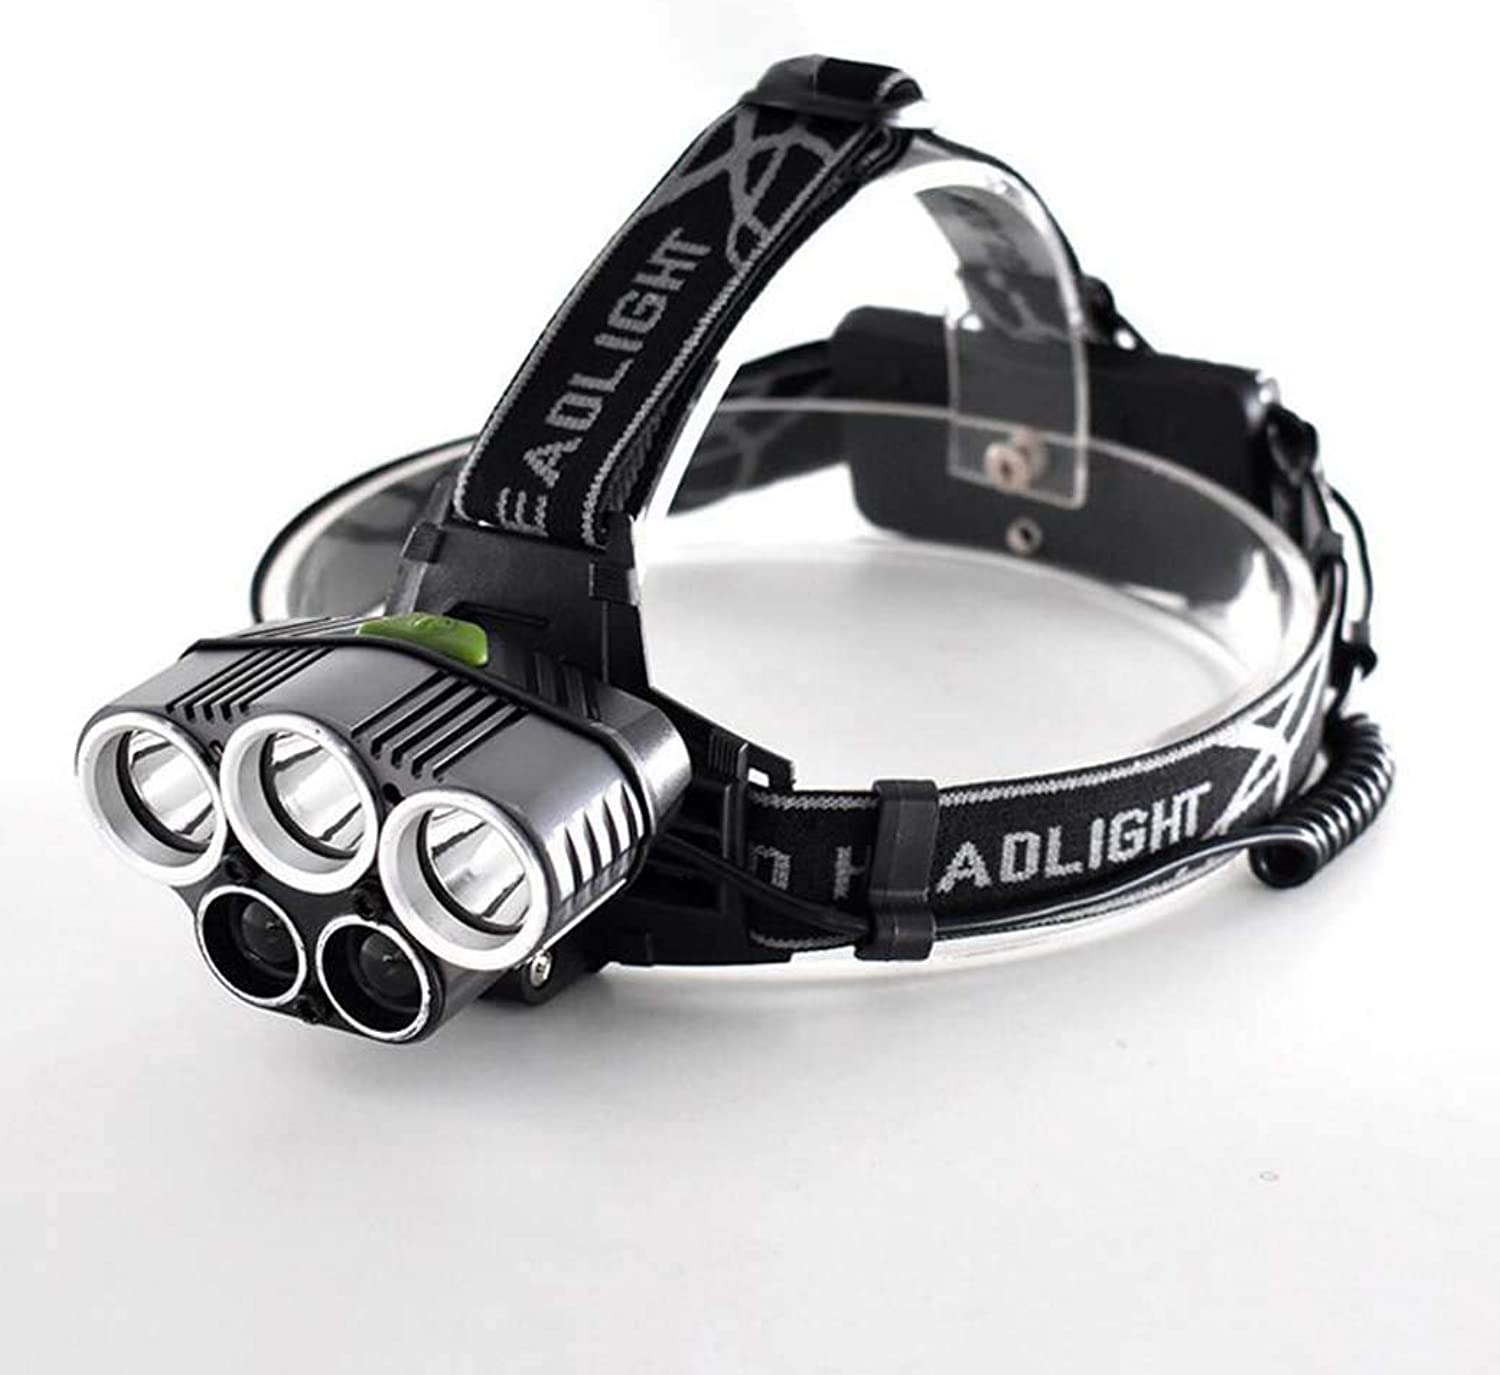 LED Headlamp,USB Rechargeable HeadMounted Super Bright LED Torch, Waterproof Headlight for Camping, Hiking, Jogging, Running Fishing, Kids